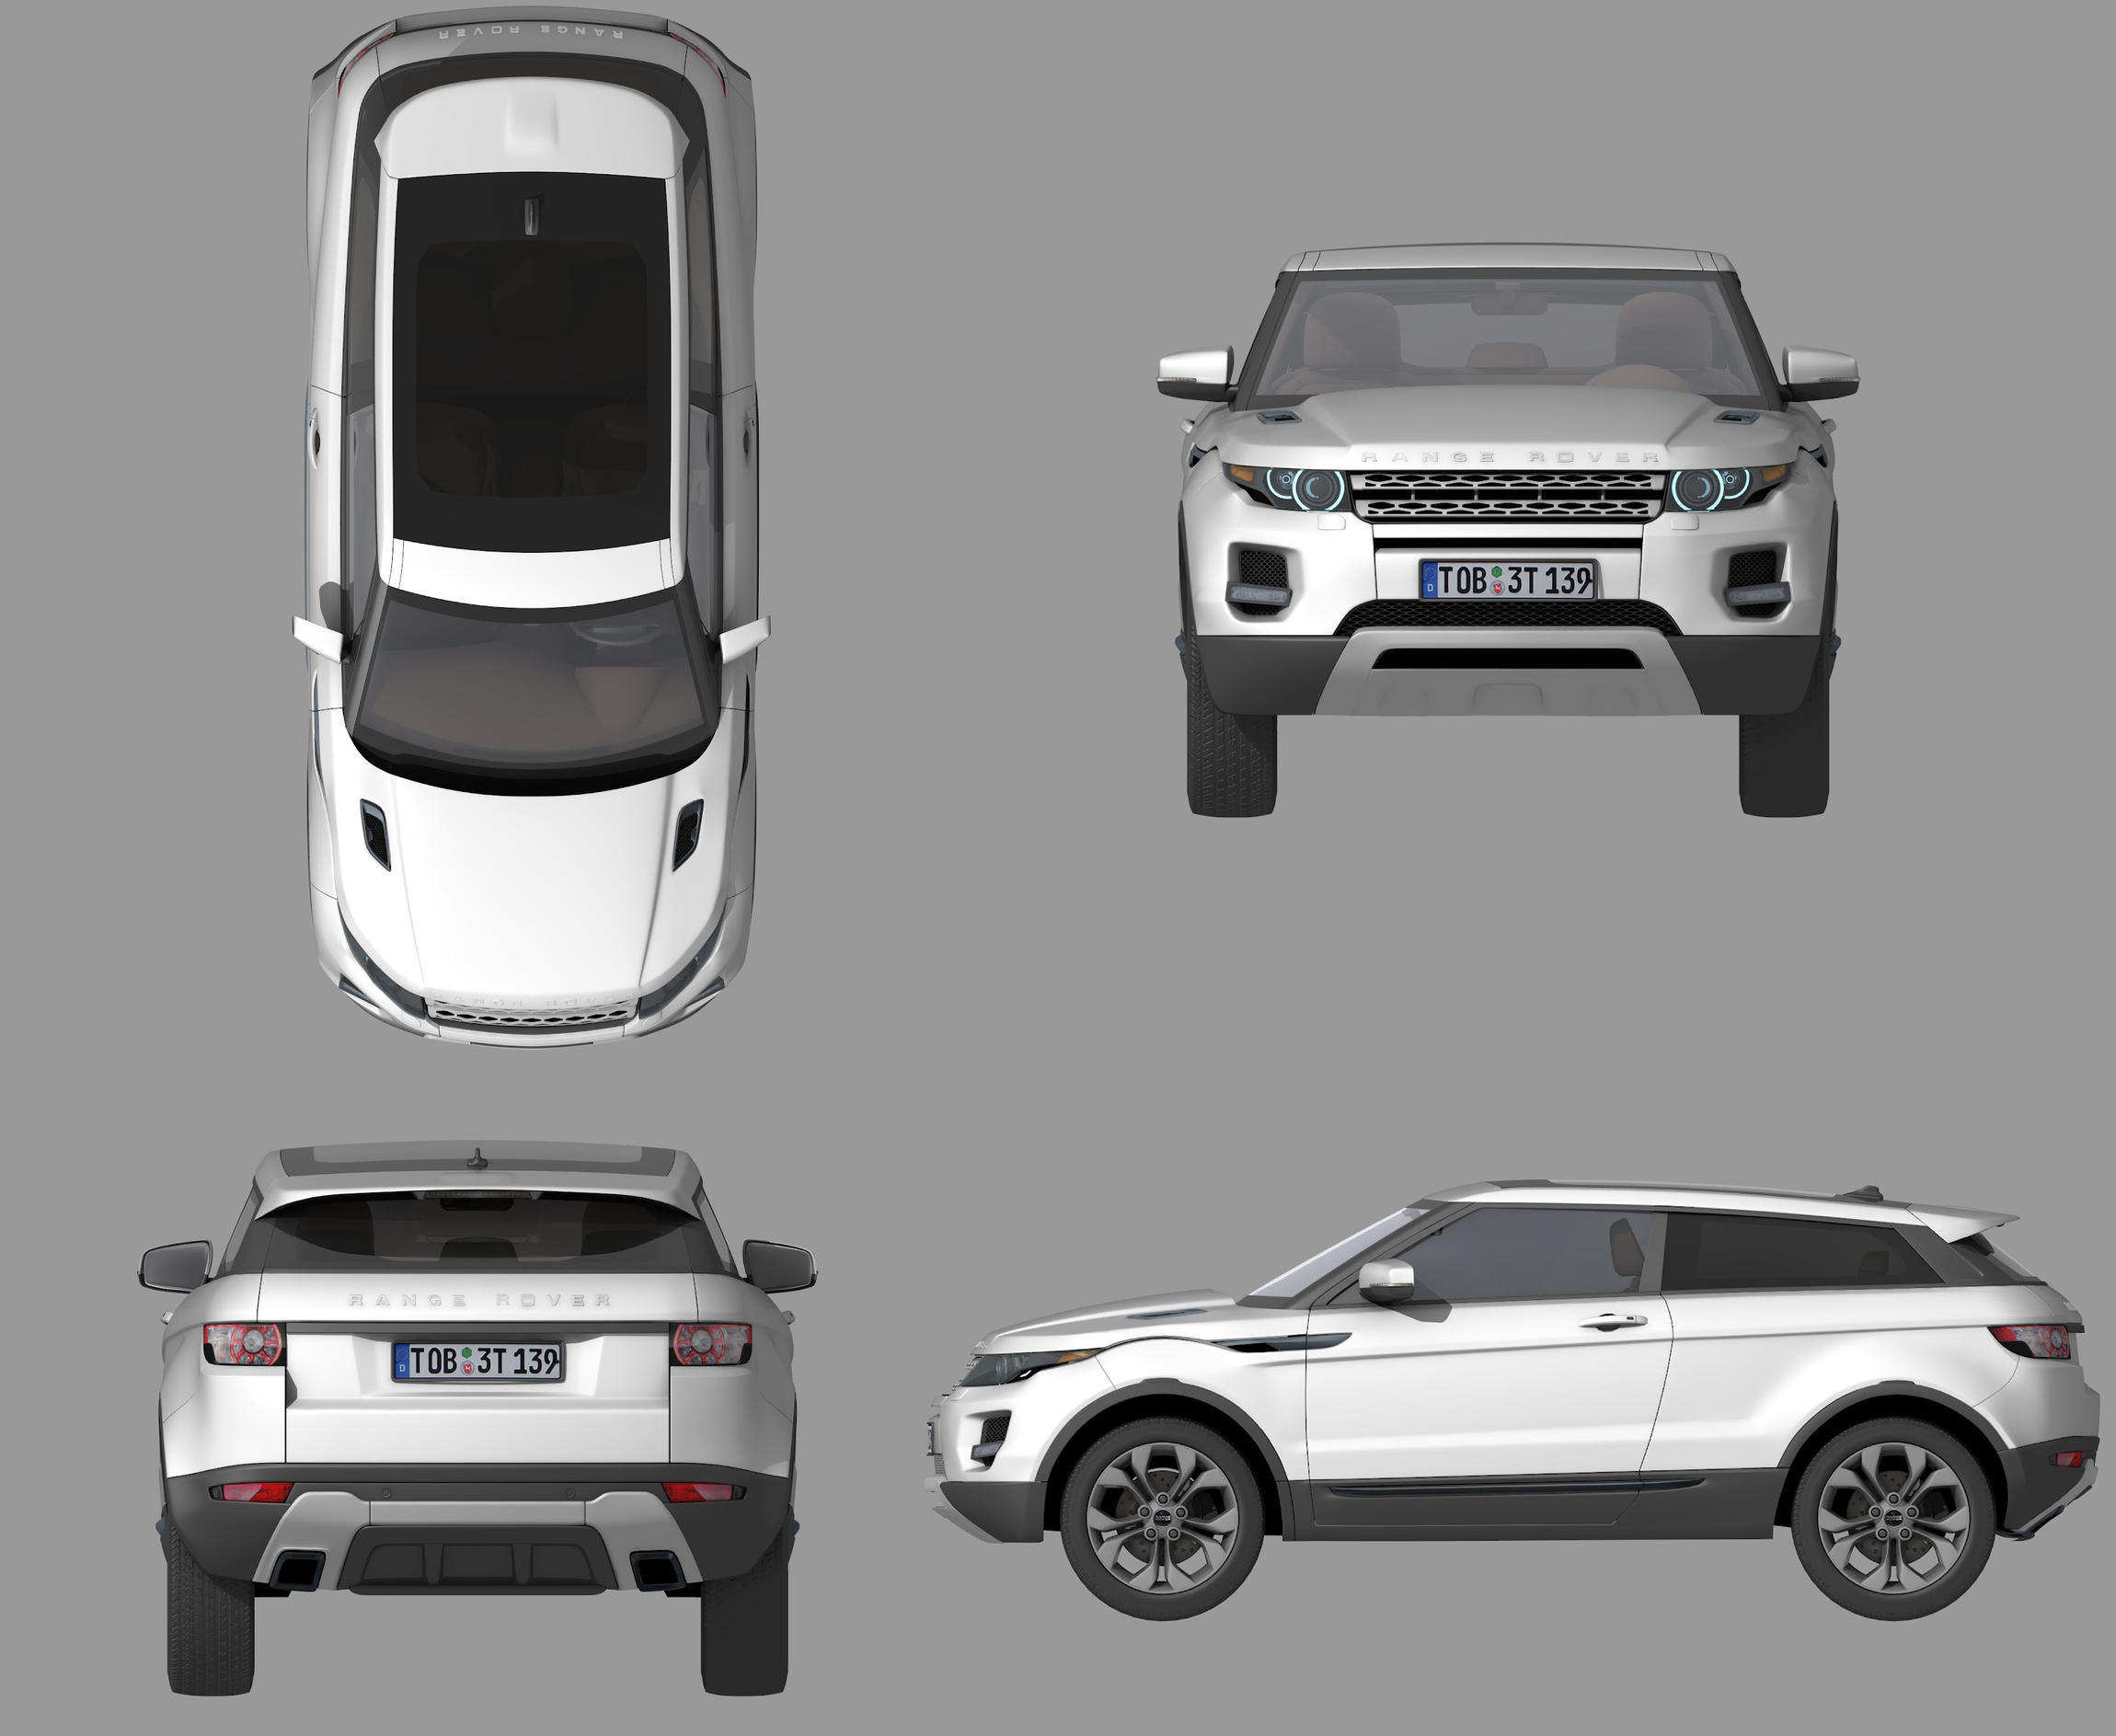 Range rover evoque finished projects blender artists community rreg2300x1887 217 kb malvernweather Gallery